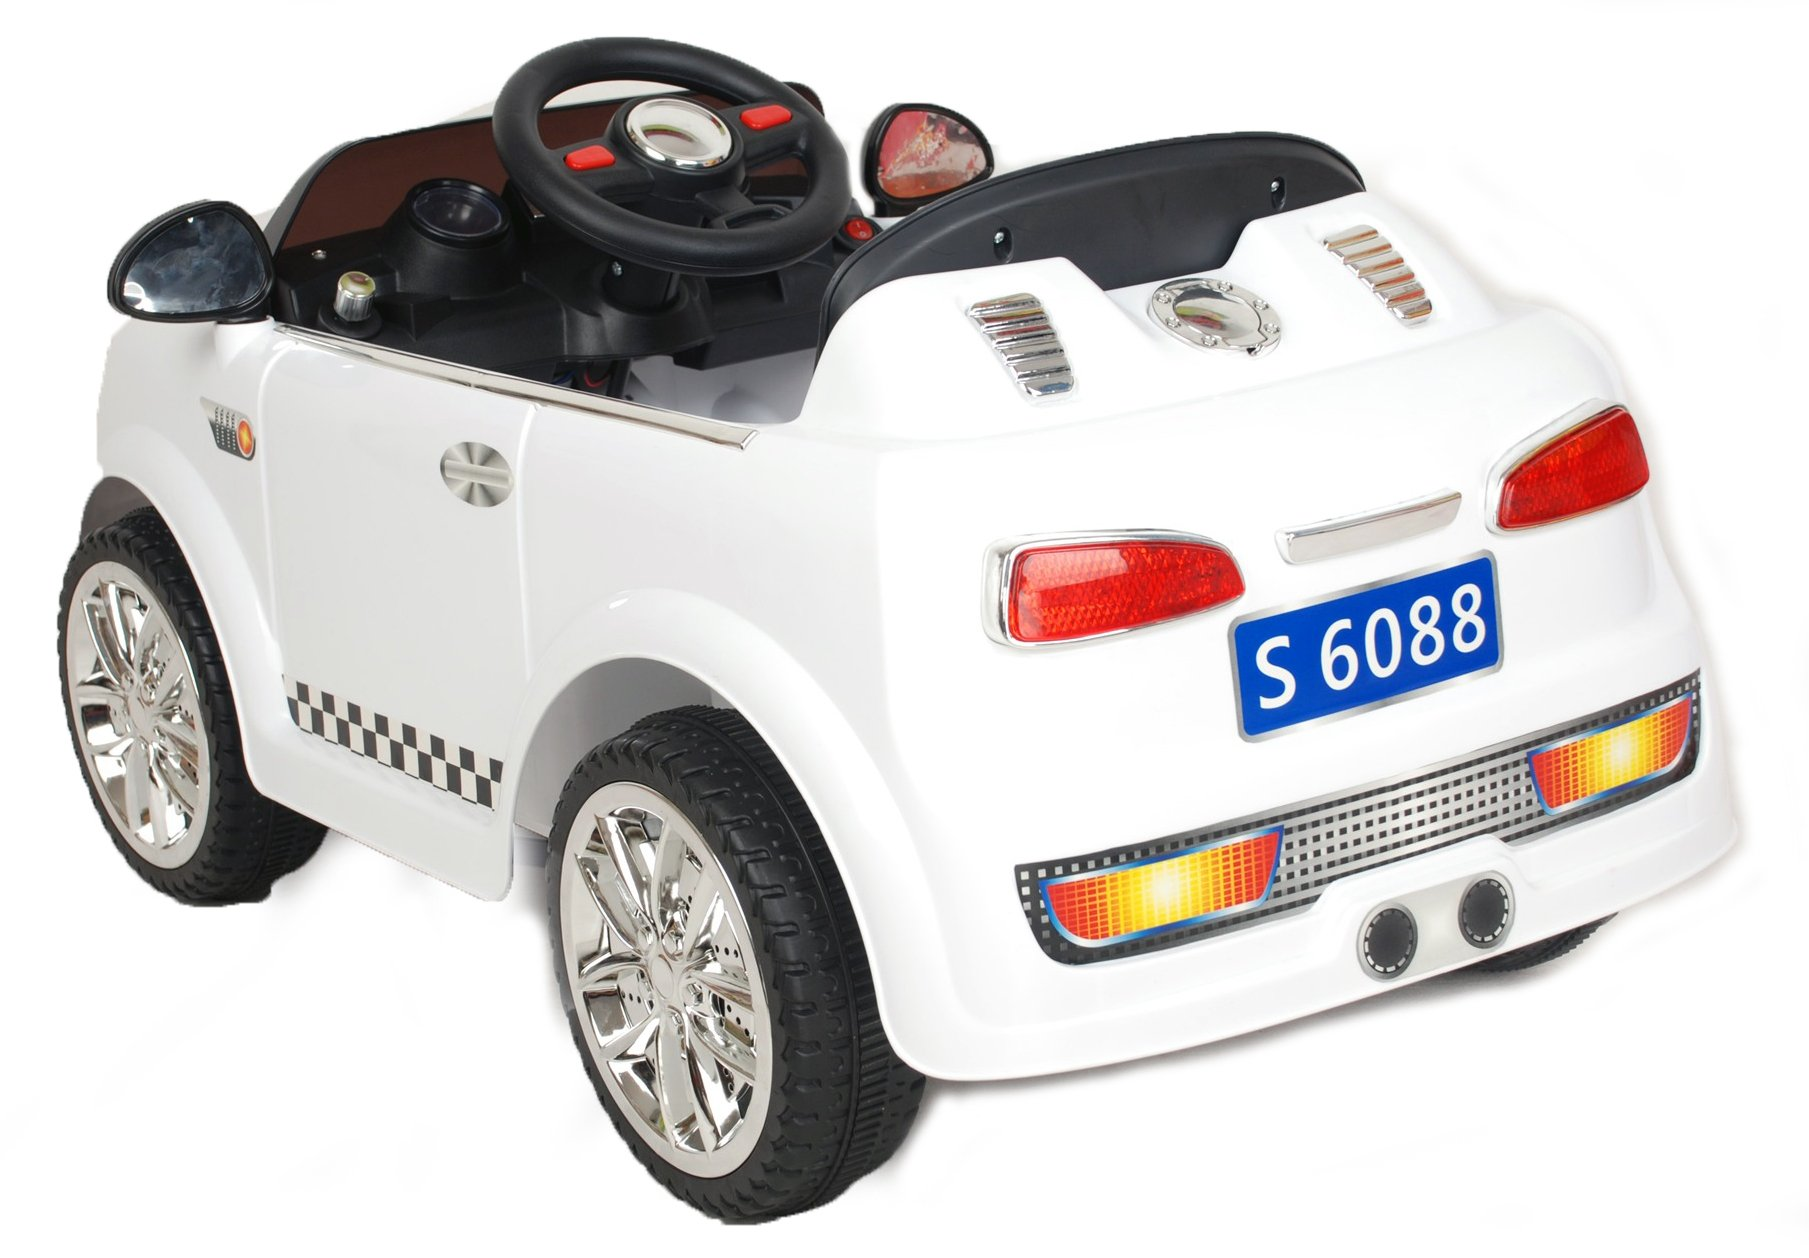 6v 15w battery powered electric ride on mini toy car with parental remote control model s6088 white